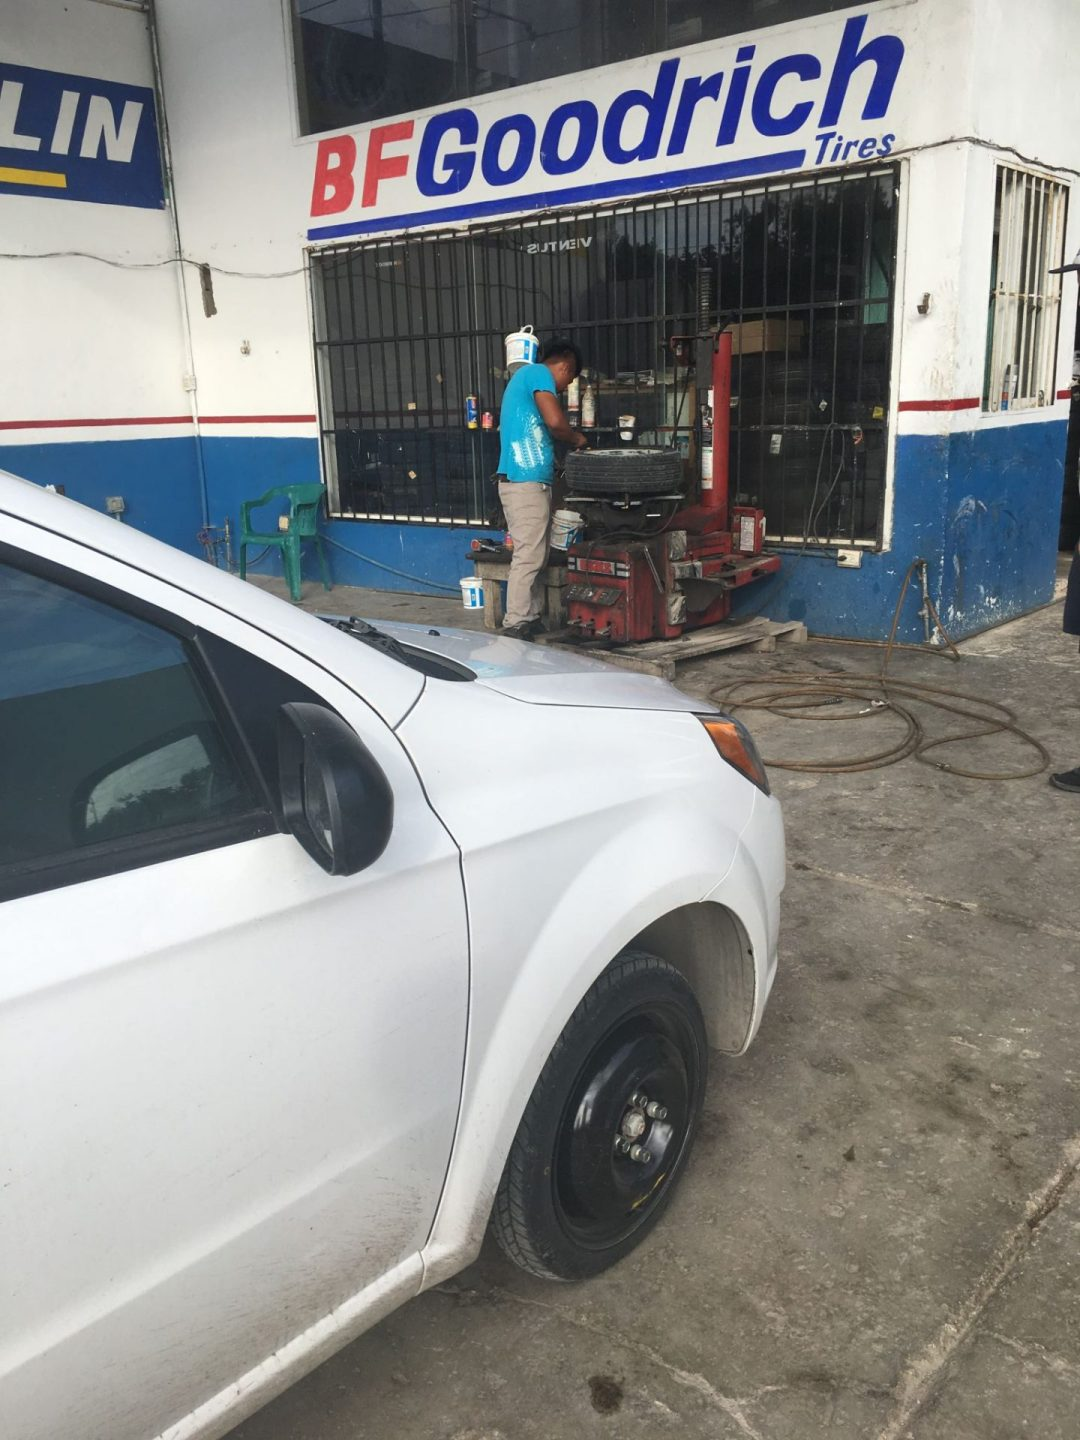 Getting a flat tire in Mexico